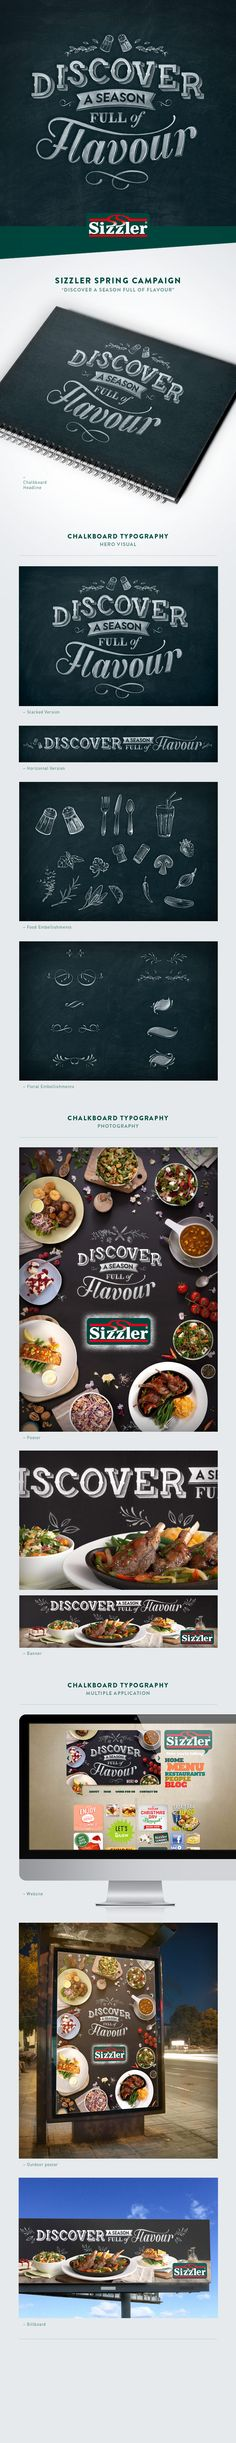 https://www.behance.net/gallery/22154391/Sizzler-Discover-a-Season-Full-of-Flavour?utm_medium=email